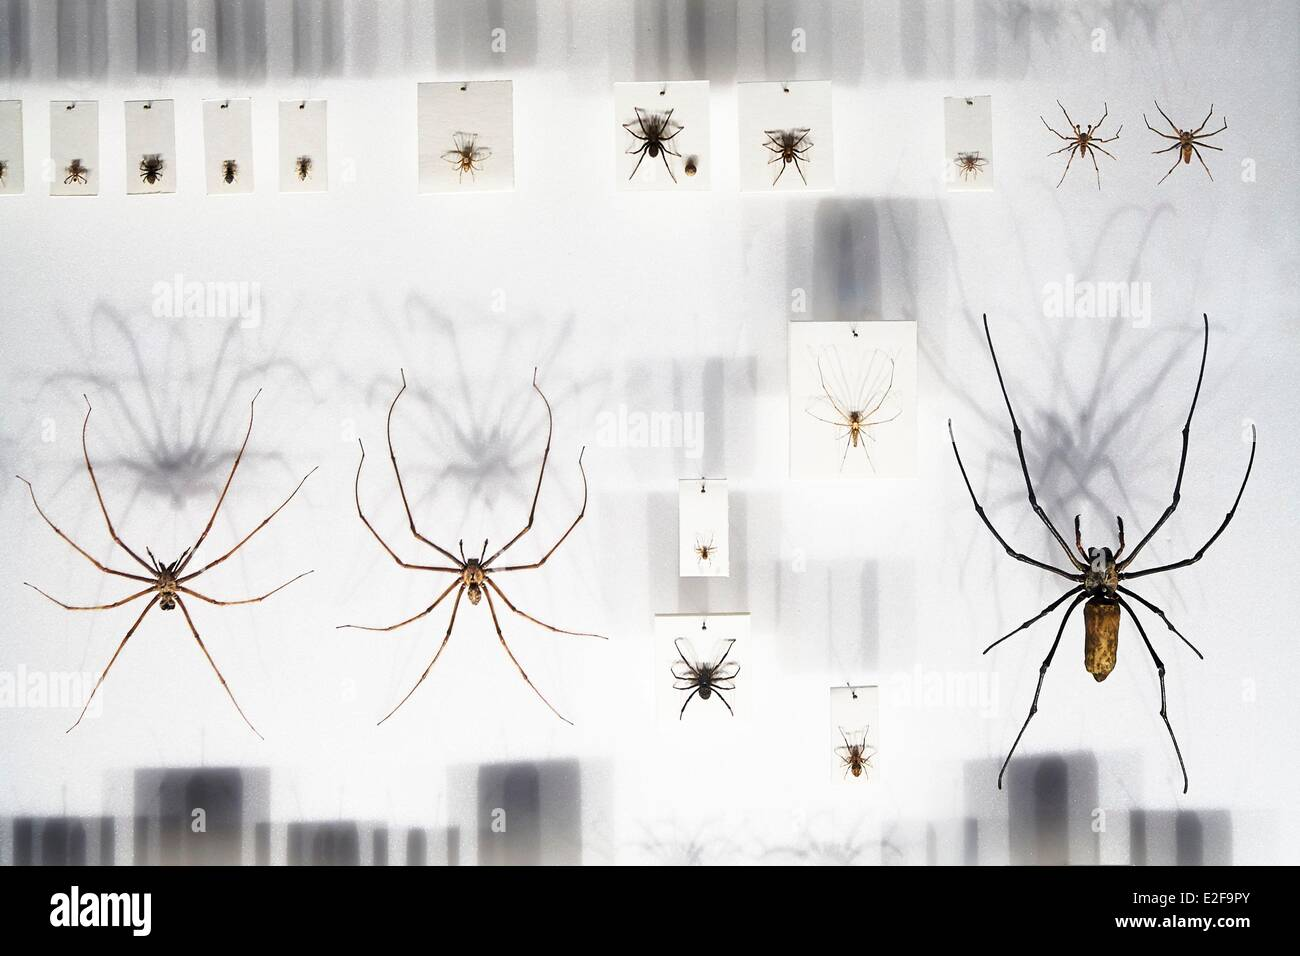 France, Haute Garonne, Toulouse, Natural History Museum, Spider collection - Stock Image